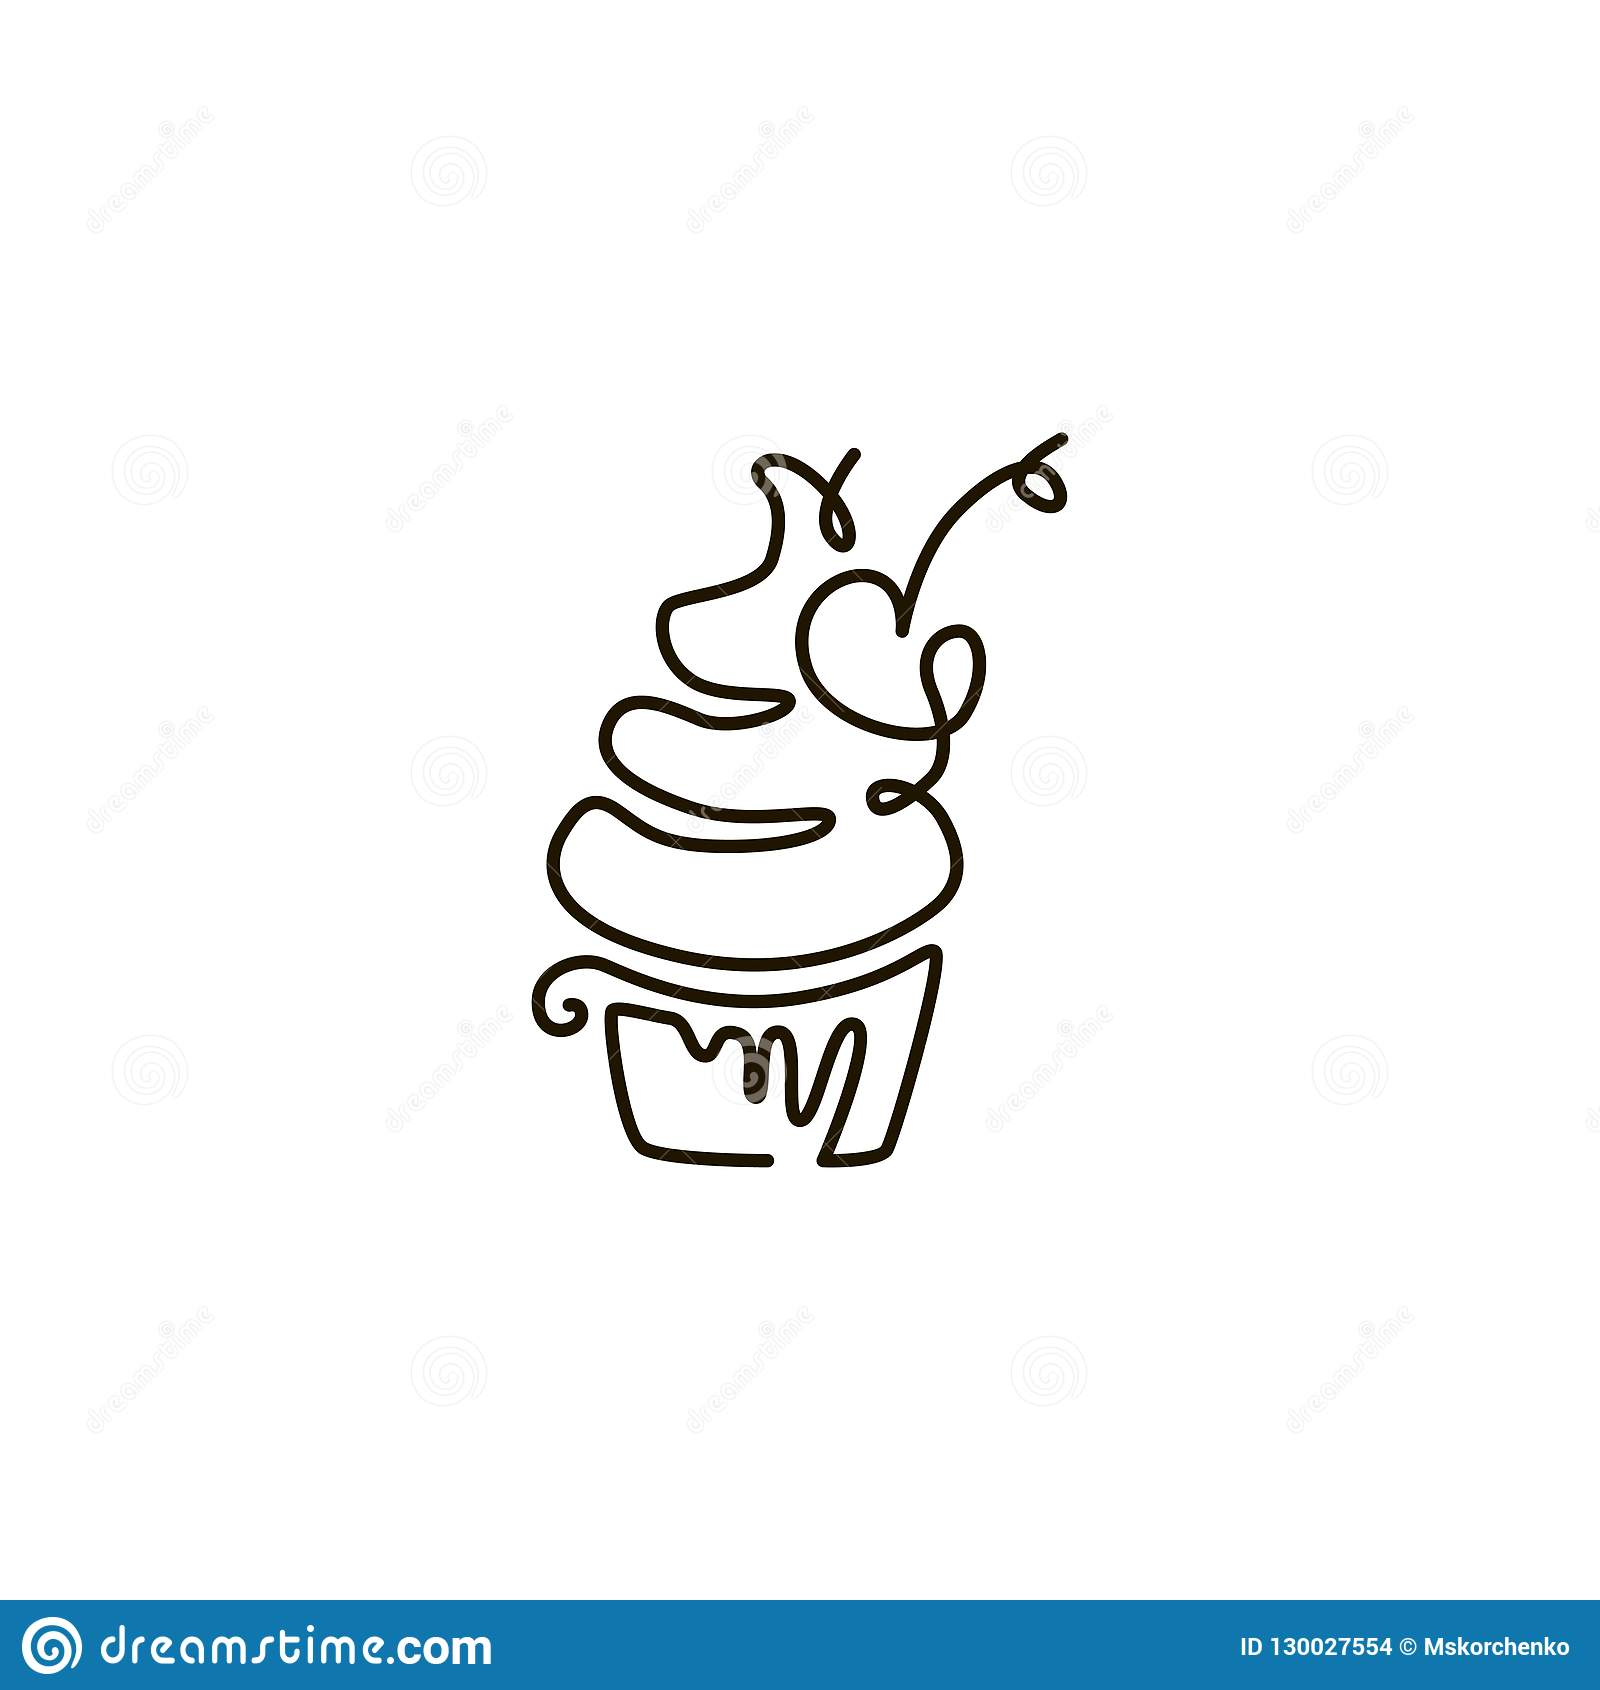 Vector Line Icon. Cupcake. One line drawing. Isolated on white background